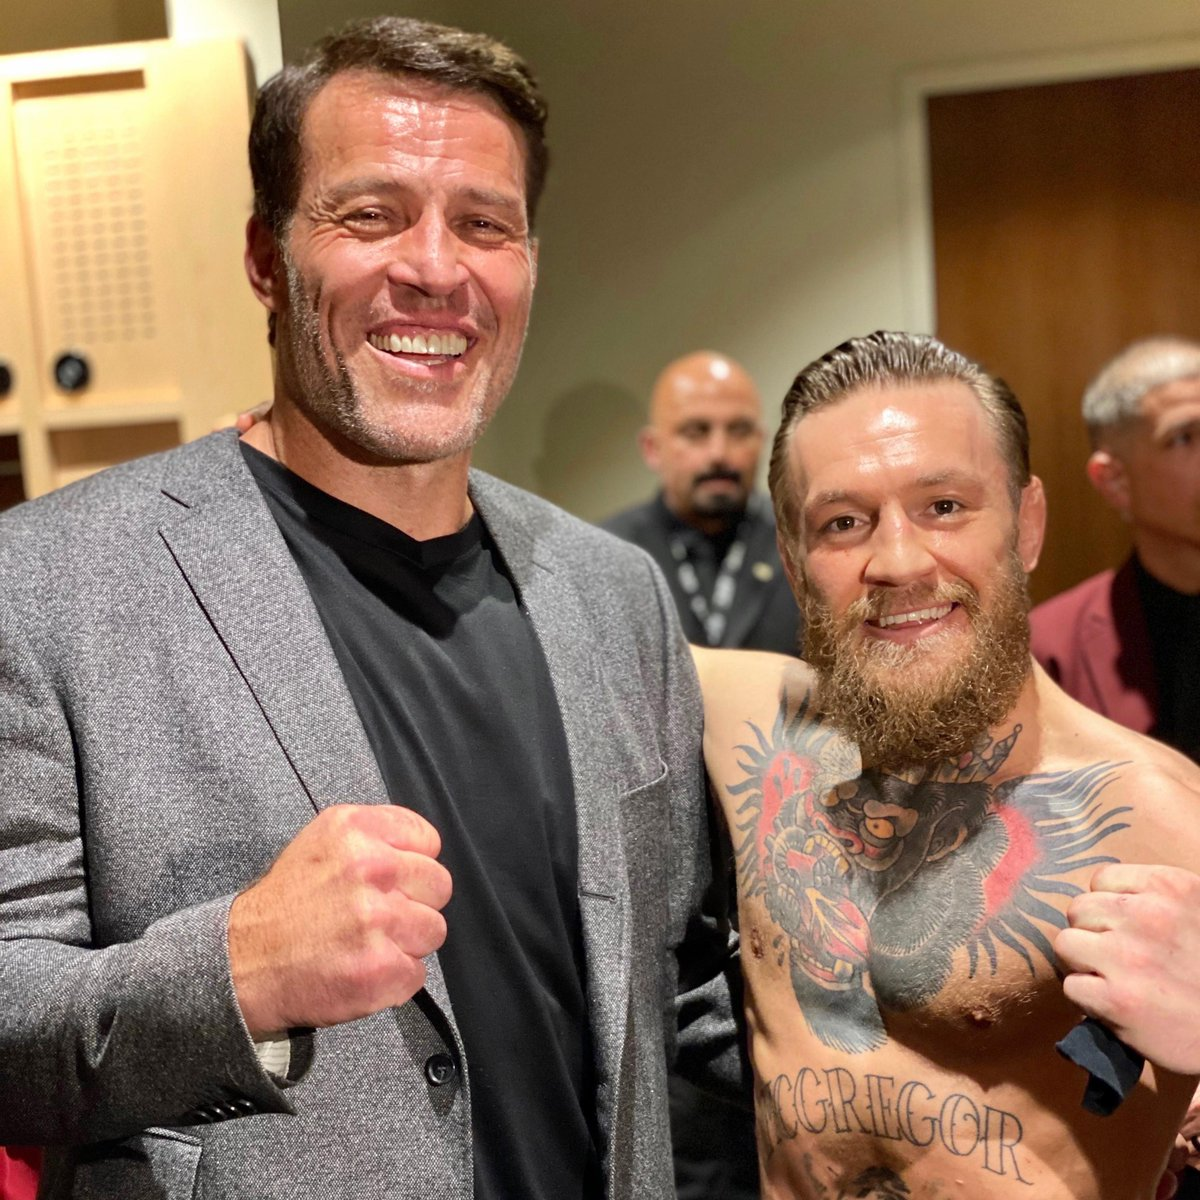 So proud of @TheNotoriousMMA — the ONE & ONLY, #ConorMcGregor!!  What a turnaround he's created within himself in the last year. He's had a WORK ETHIC like no other — not only strengthening his body to be even more FIT than he's been, but also and perhaps, MORE IMPORTANTLY...<br>http://pic.twitter.com/9fhrXz824L